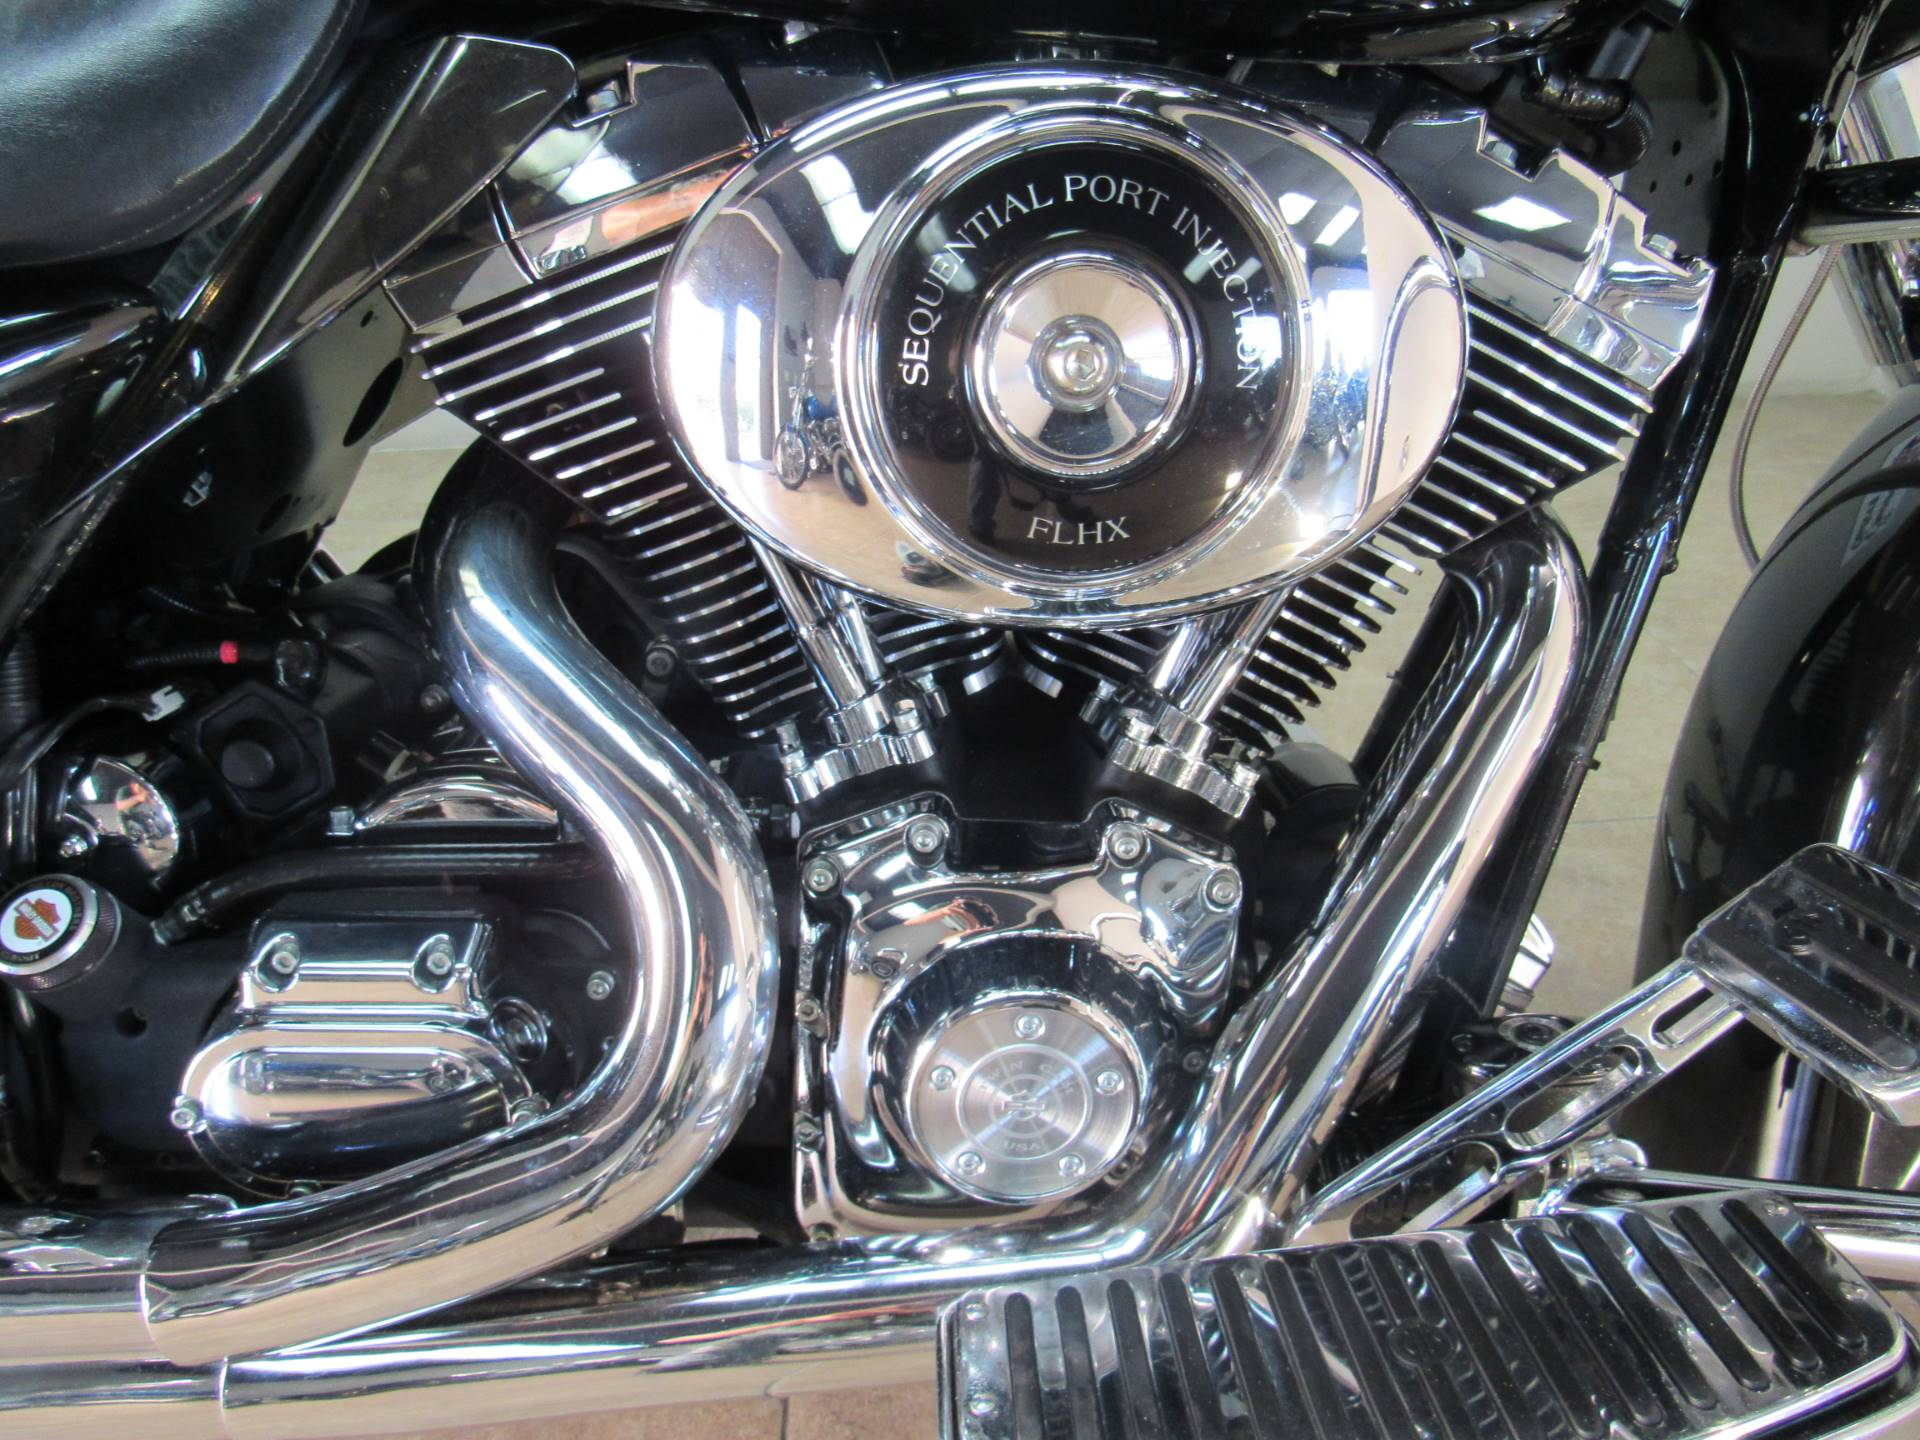 2006 Harley-Davidson Street Glide™ in Temecula, California - Photo 5